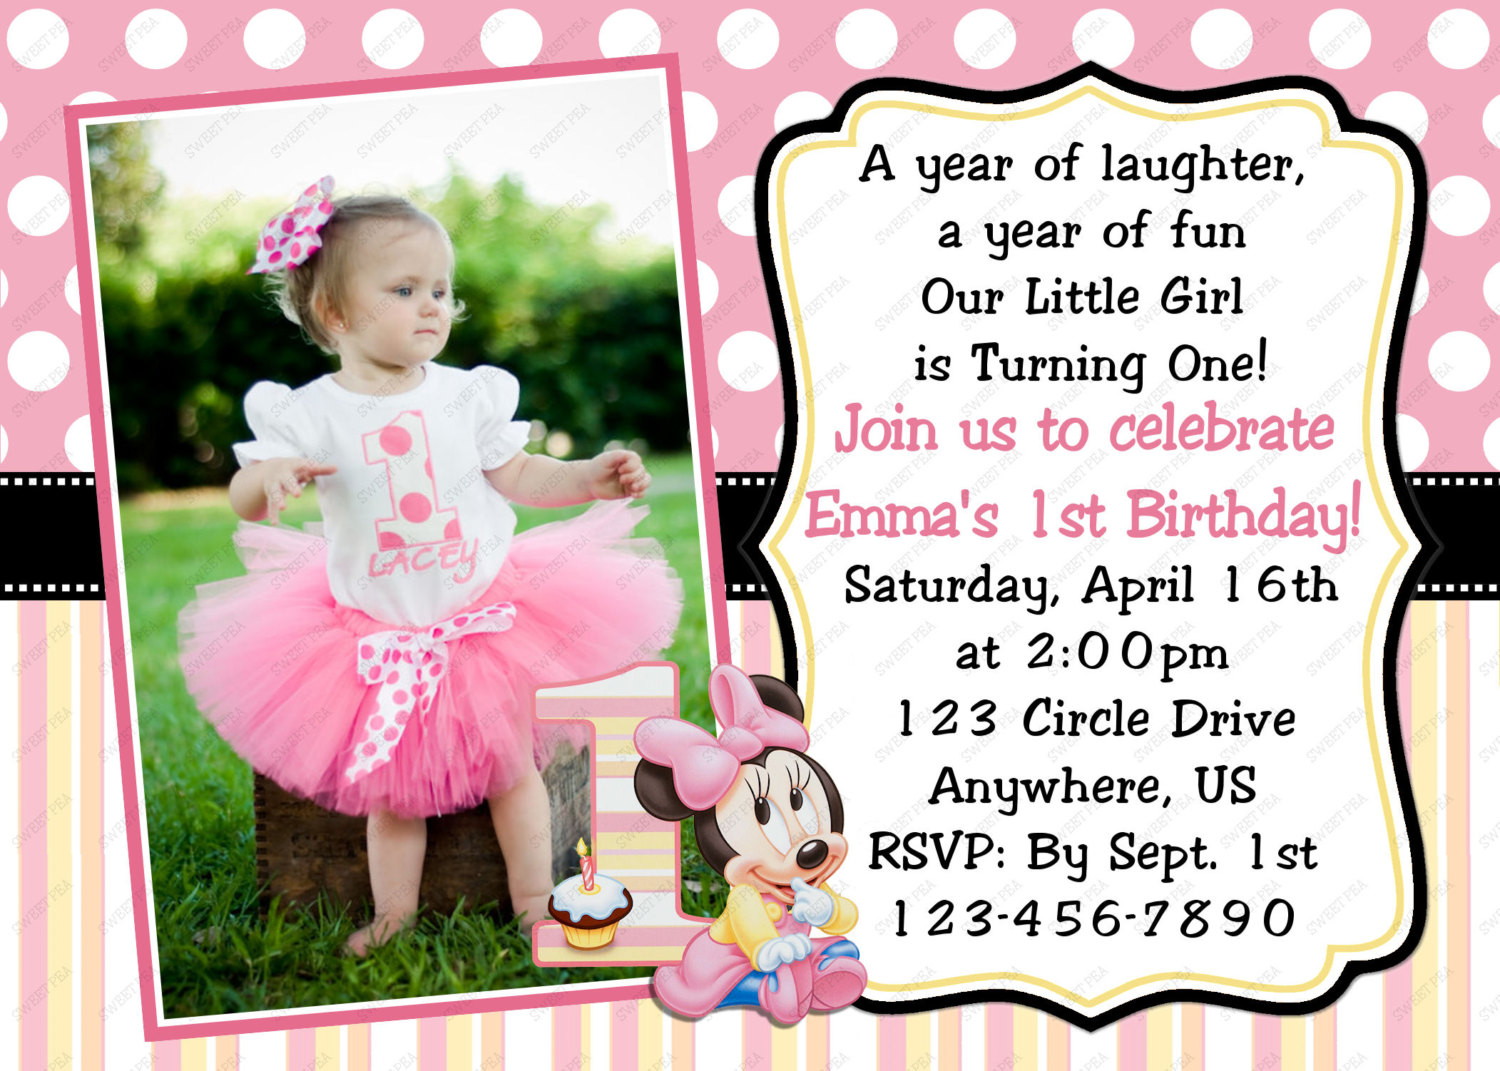 1st birthday invitation quotes for baby girl ; free_printable_1st_birthday_invitations_girl_with_high_definition_hd_size_silver_image_inspirational_beautiful_template_2